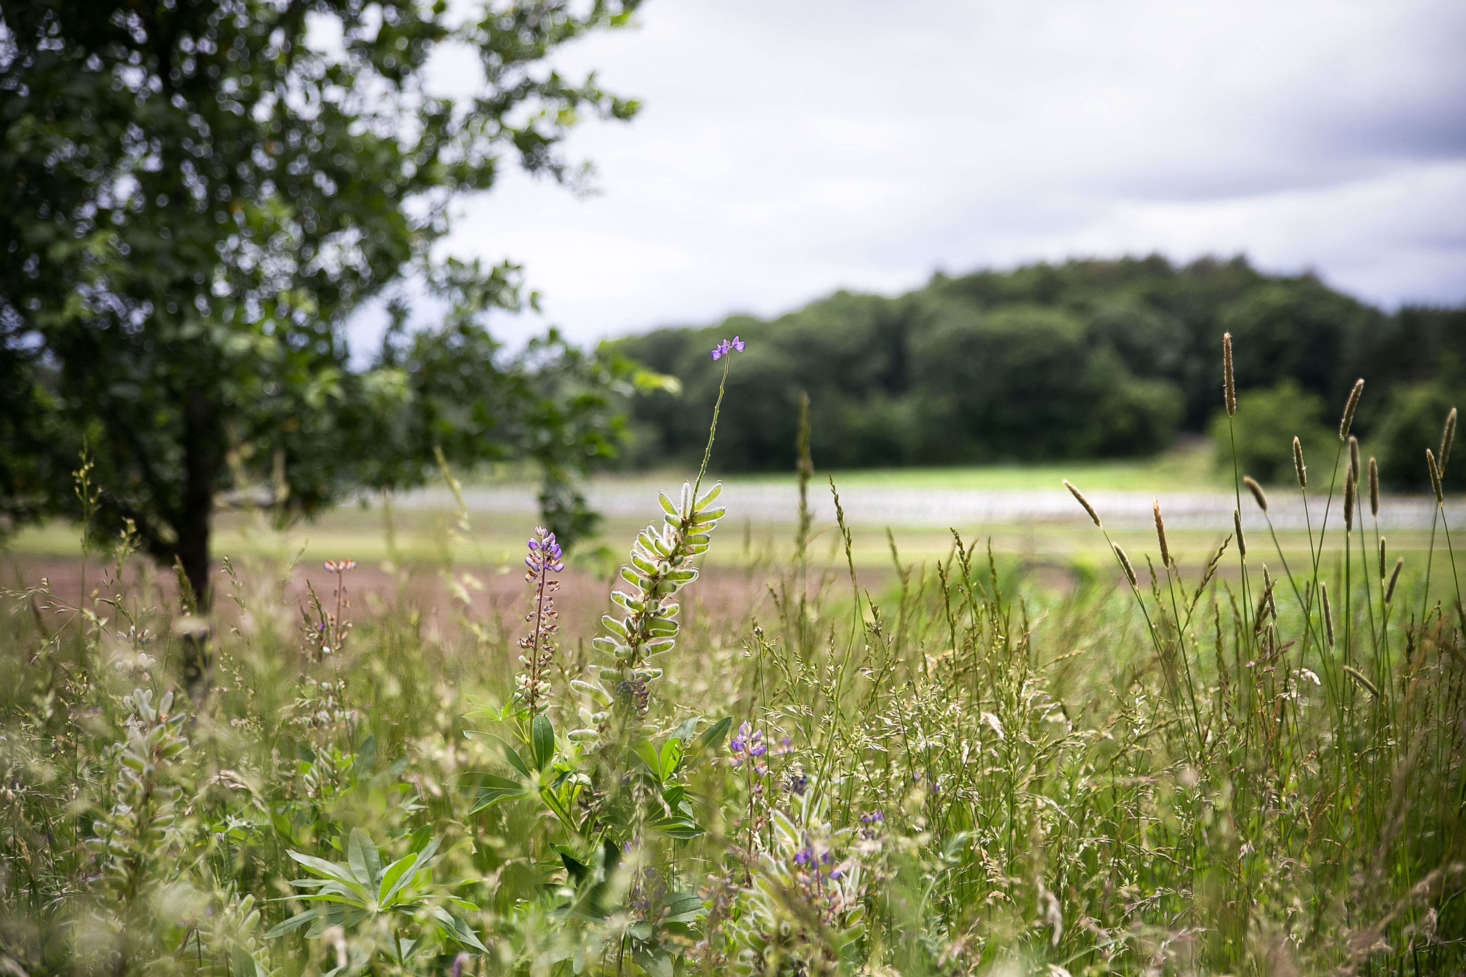 Wild grasses sway in the breeze and frame the view of the farm fields beyond.